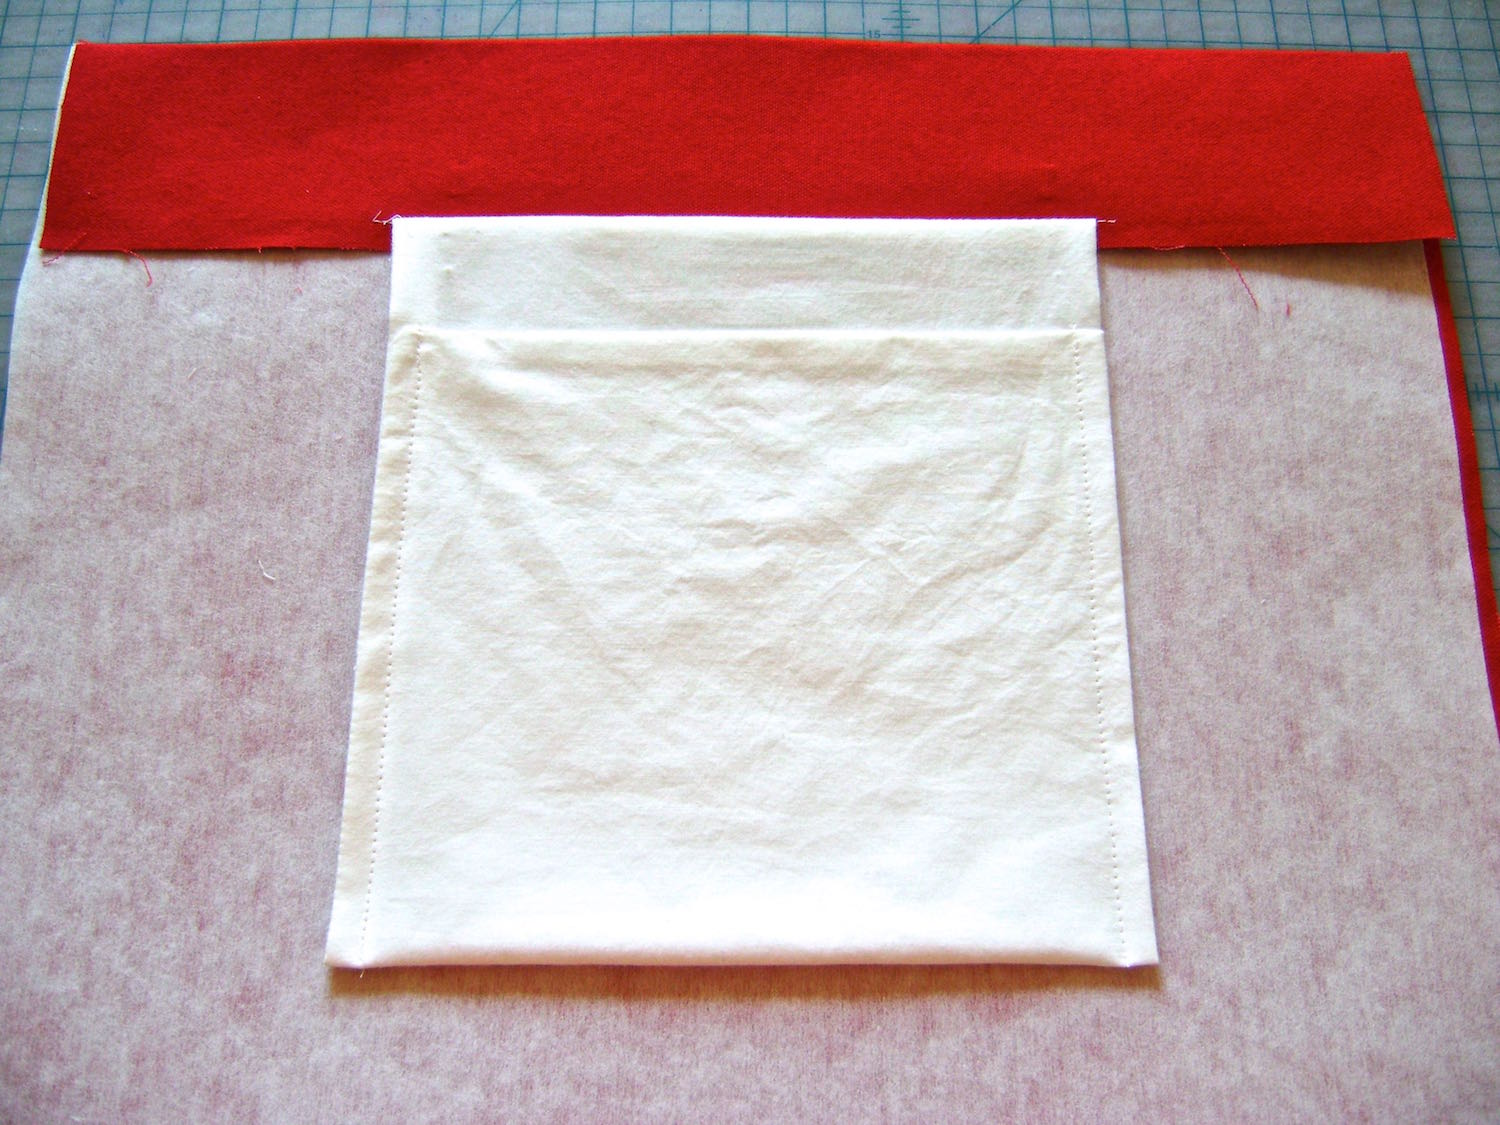 "Attach pockets if you choose to. Make them simple by sewing three sides of a 8.5"" white cotton square. Turn it right side out then fold the bottom up to within 2"" of the raw edge. To finish, sew down the sides then bast the raw edge of the pocket to the bottom raw edge of the tote hem."